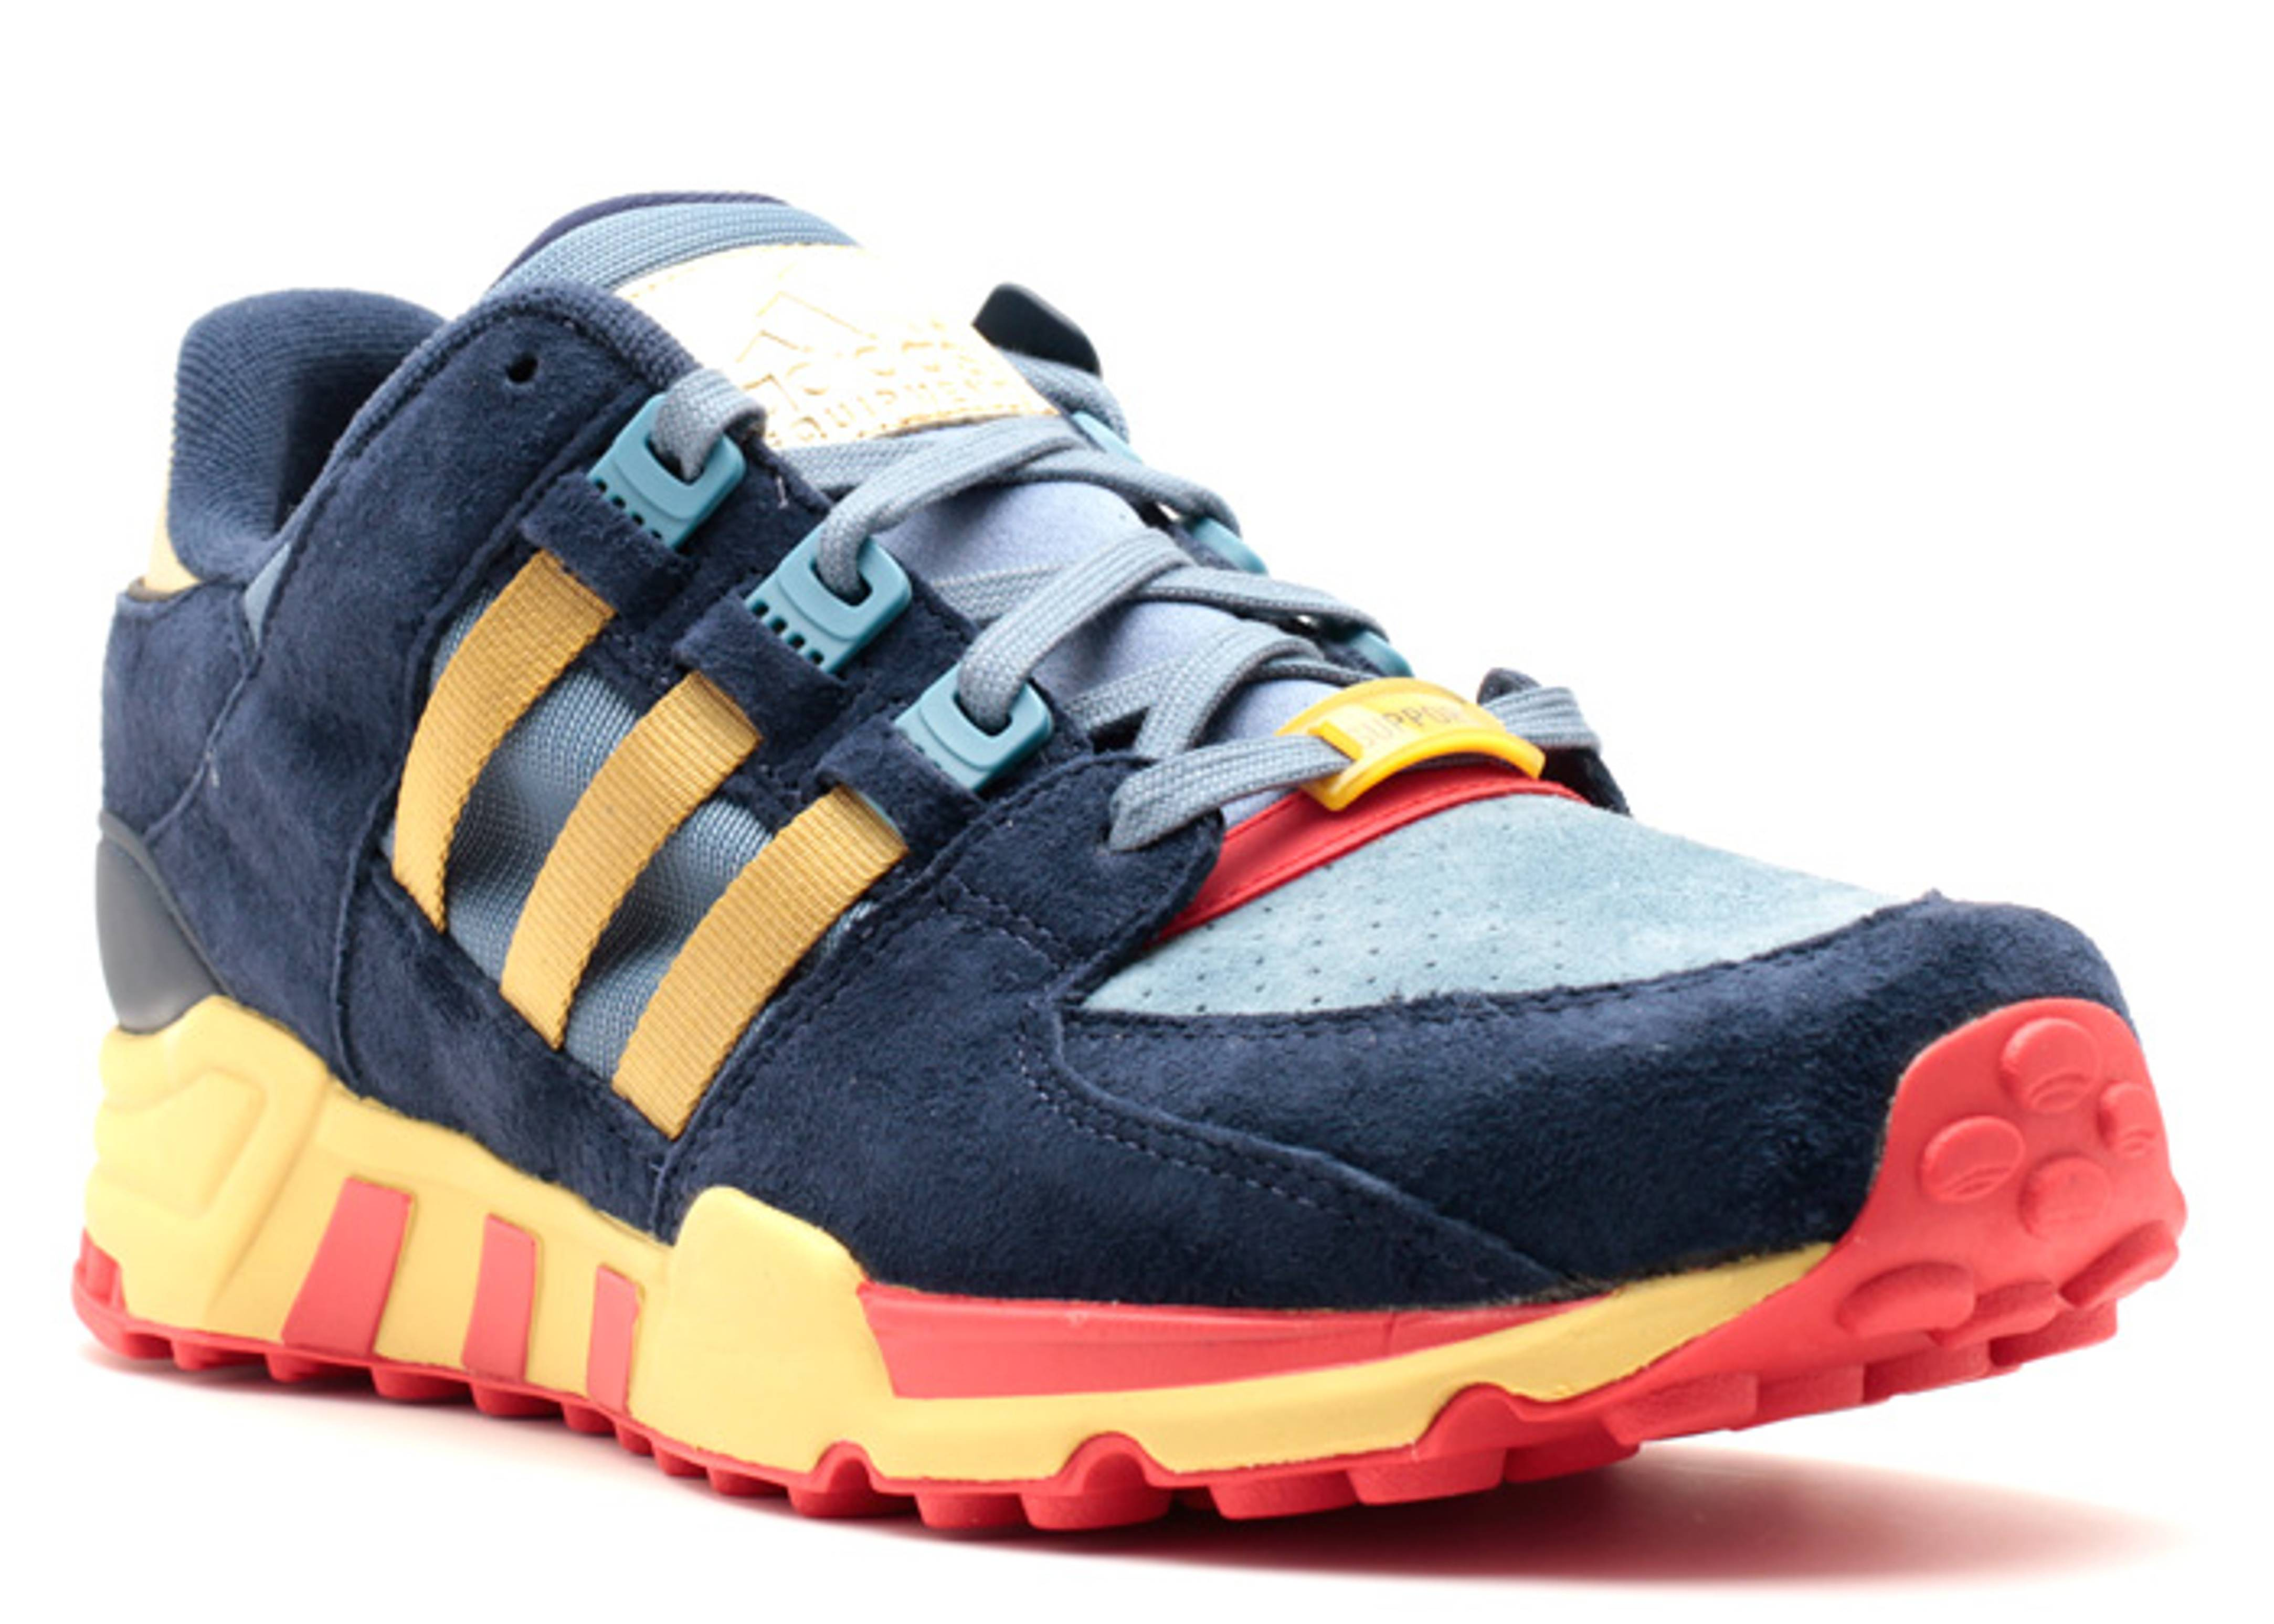 adidas equipment support packer shoes